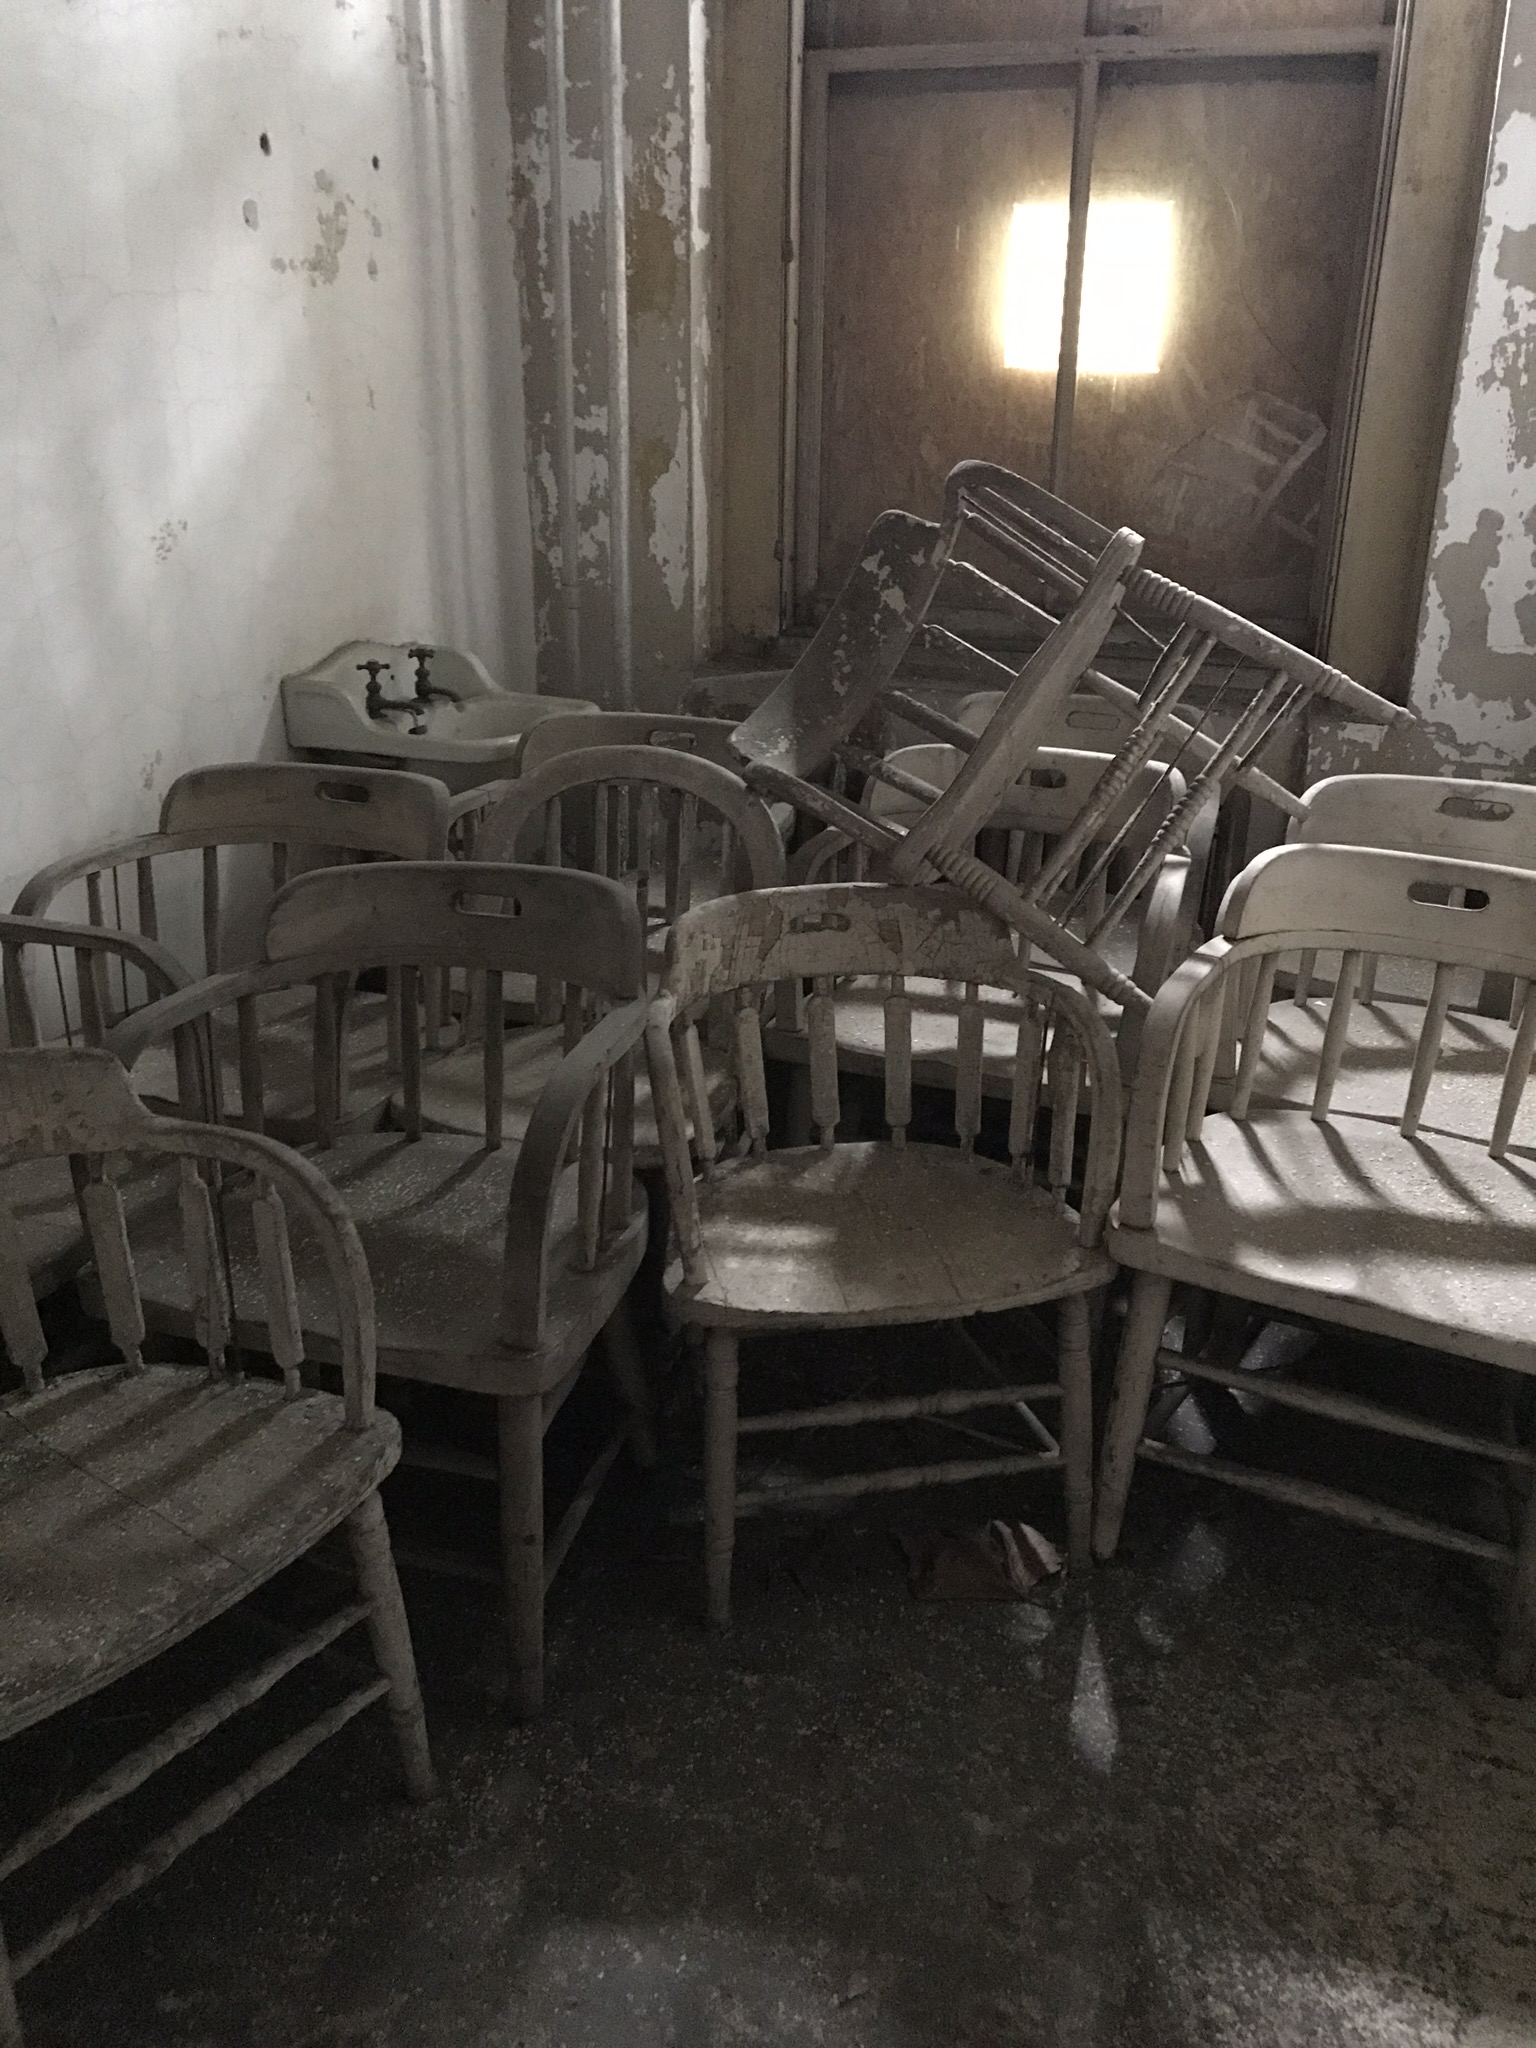 Old chairs stacked up.